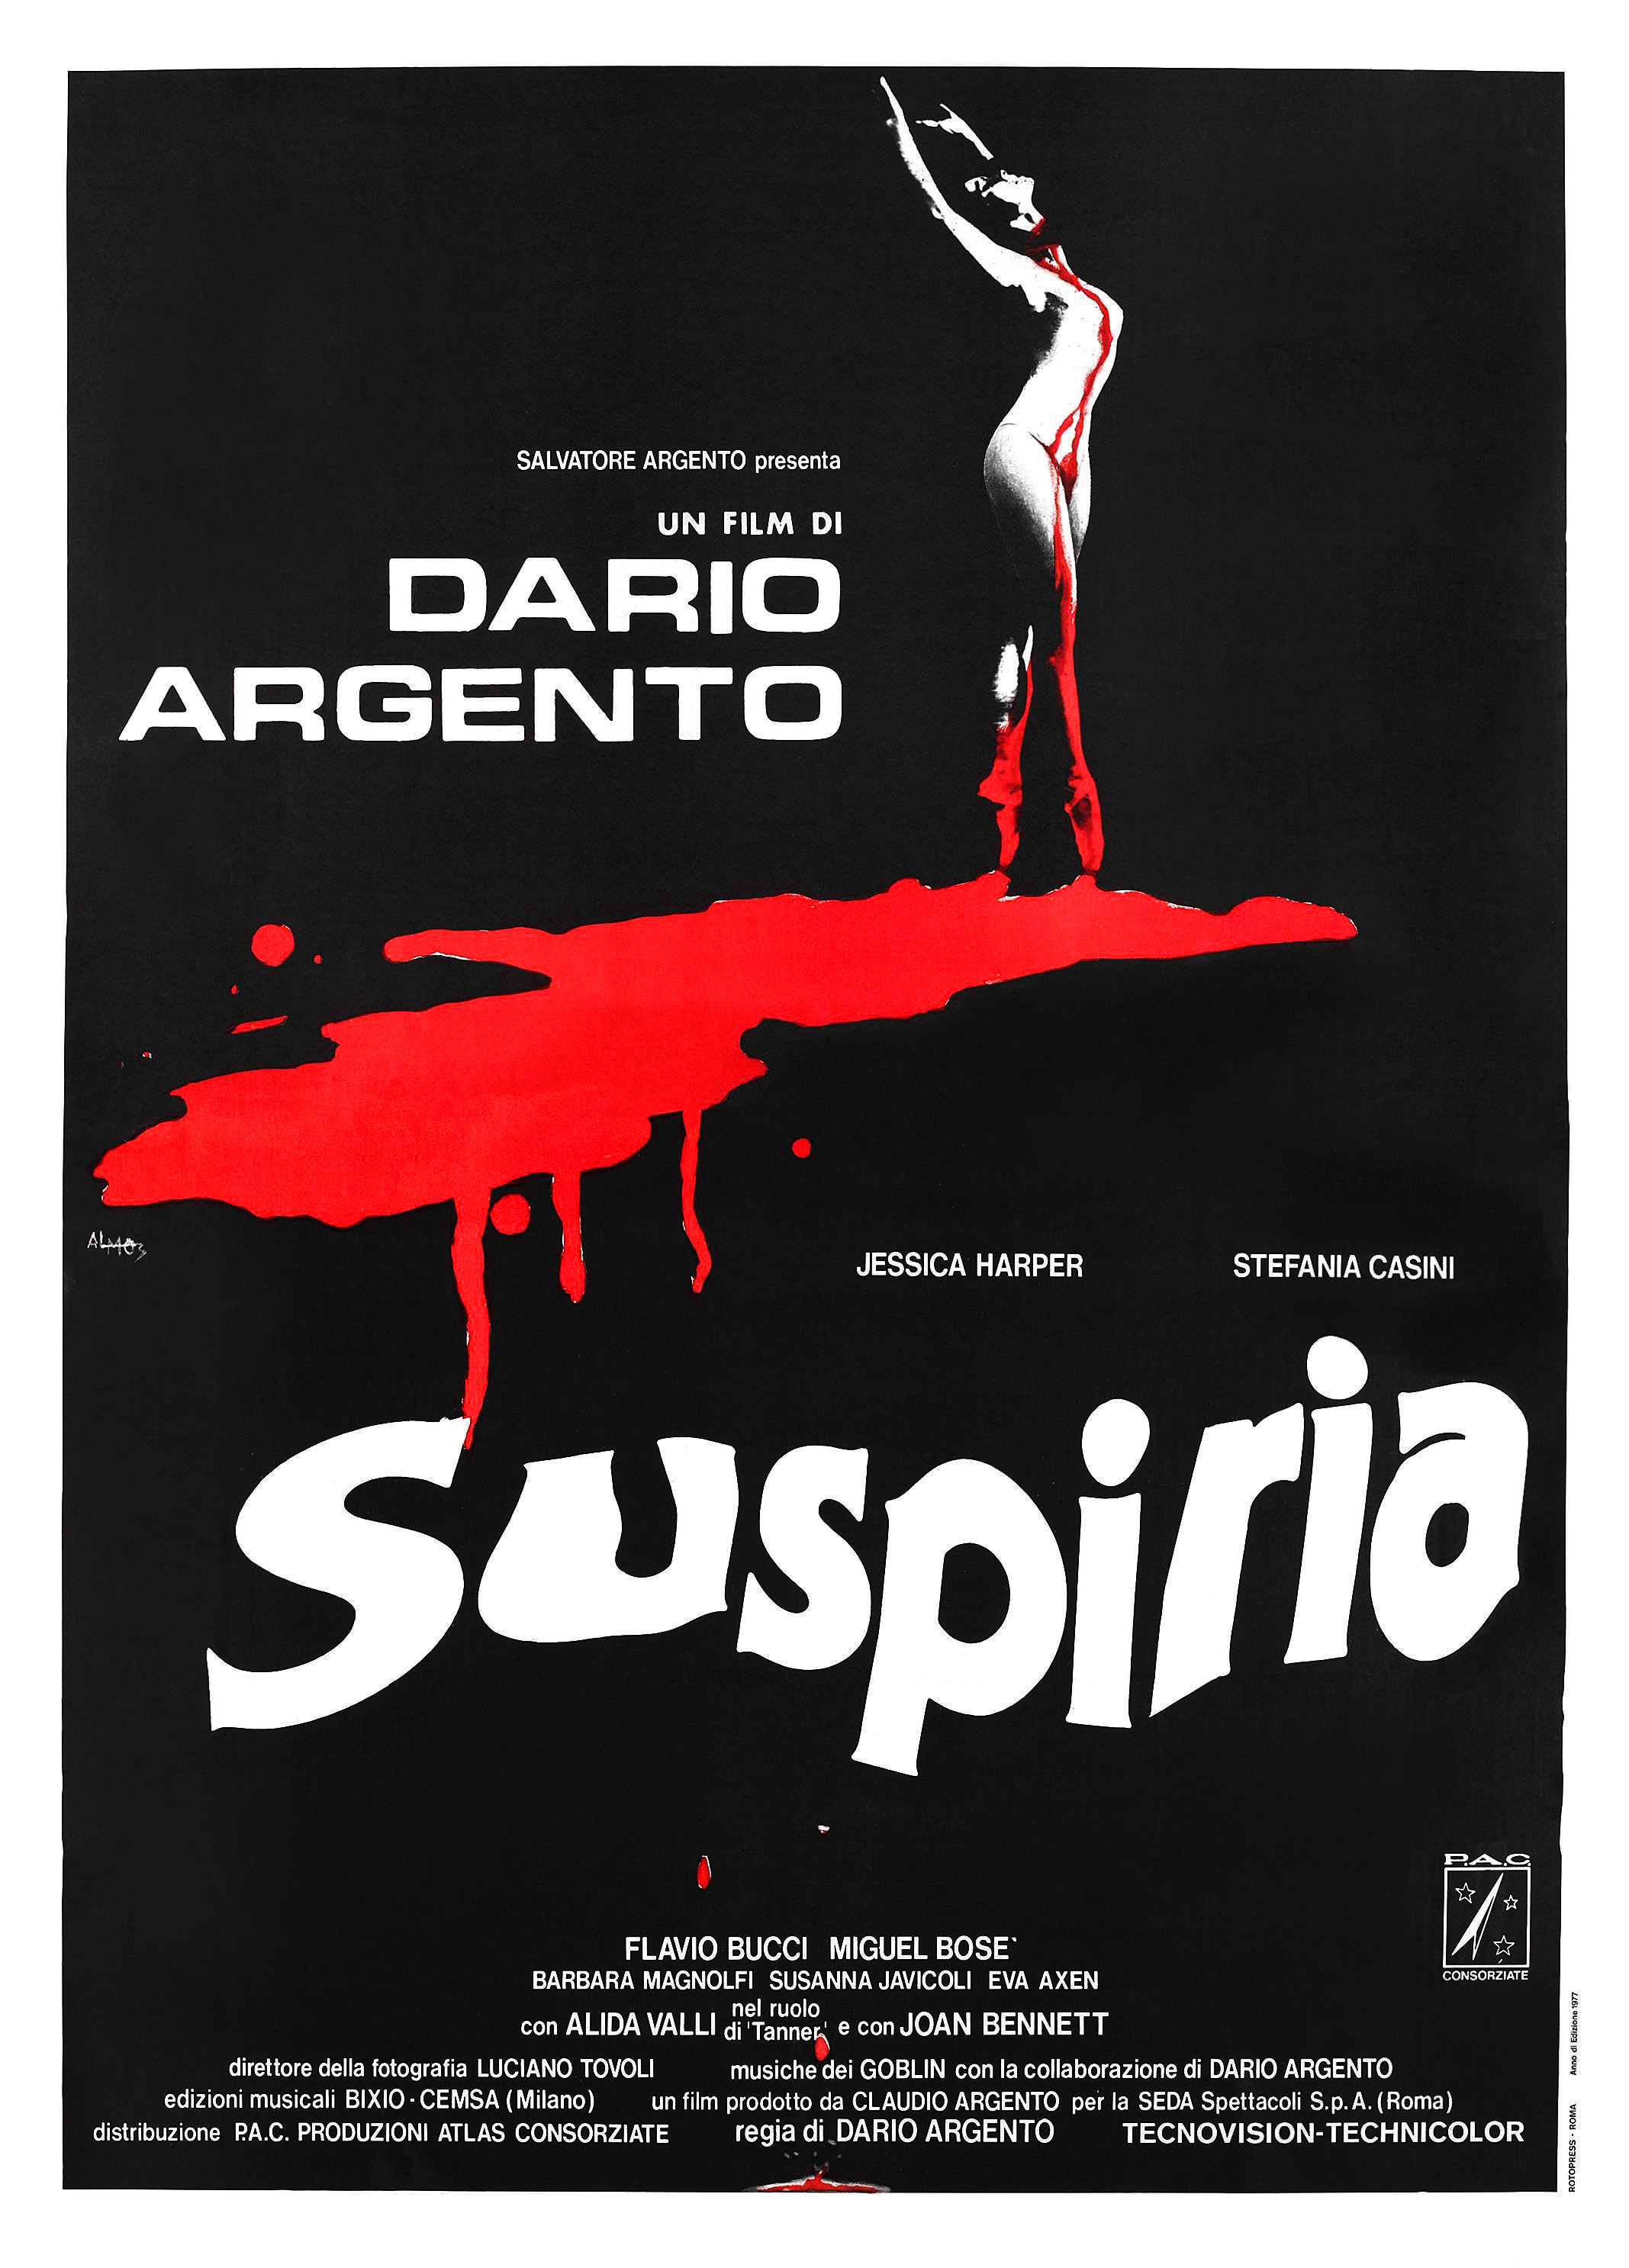 Suspiria (1977) - Directed by: Dario ArgentoStarring: Jessica Harper, Stefania Casini, Flavio Bucci, Udo KierRated: RRunning Time: 1 h 38 mTMM Score: 5 stars out of 5STRENGTHS: Directing, Music, Atmosphere, Giallo Goodness, Production Design, Color UsageWEAKNESSES: -